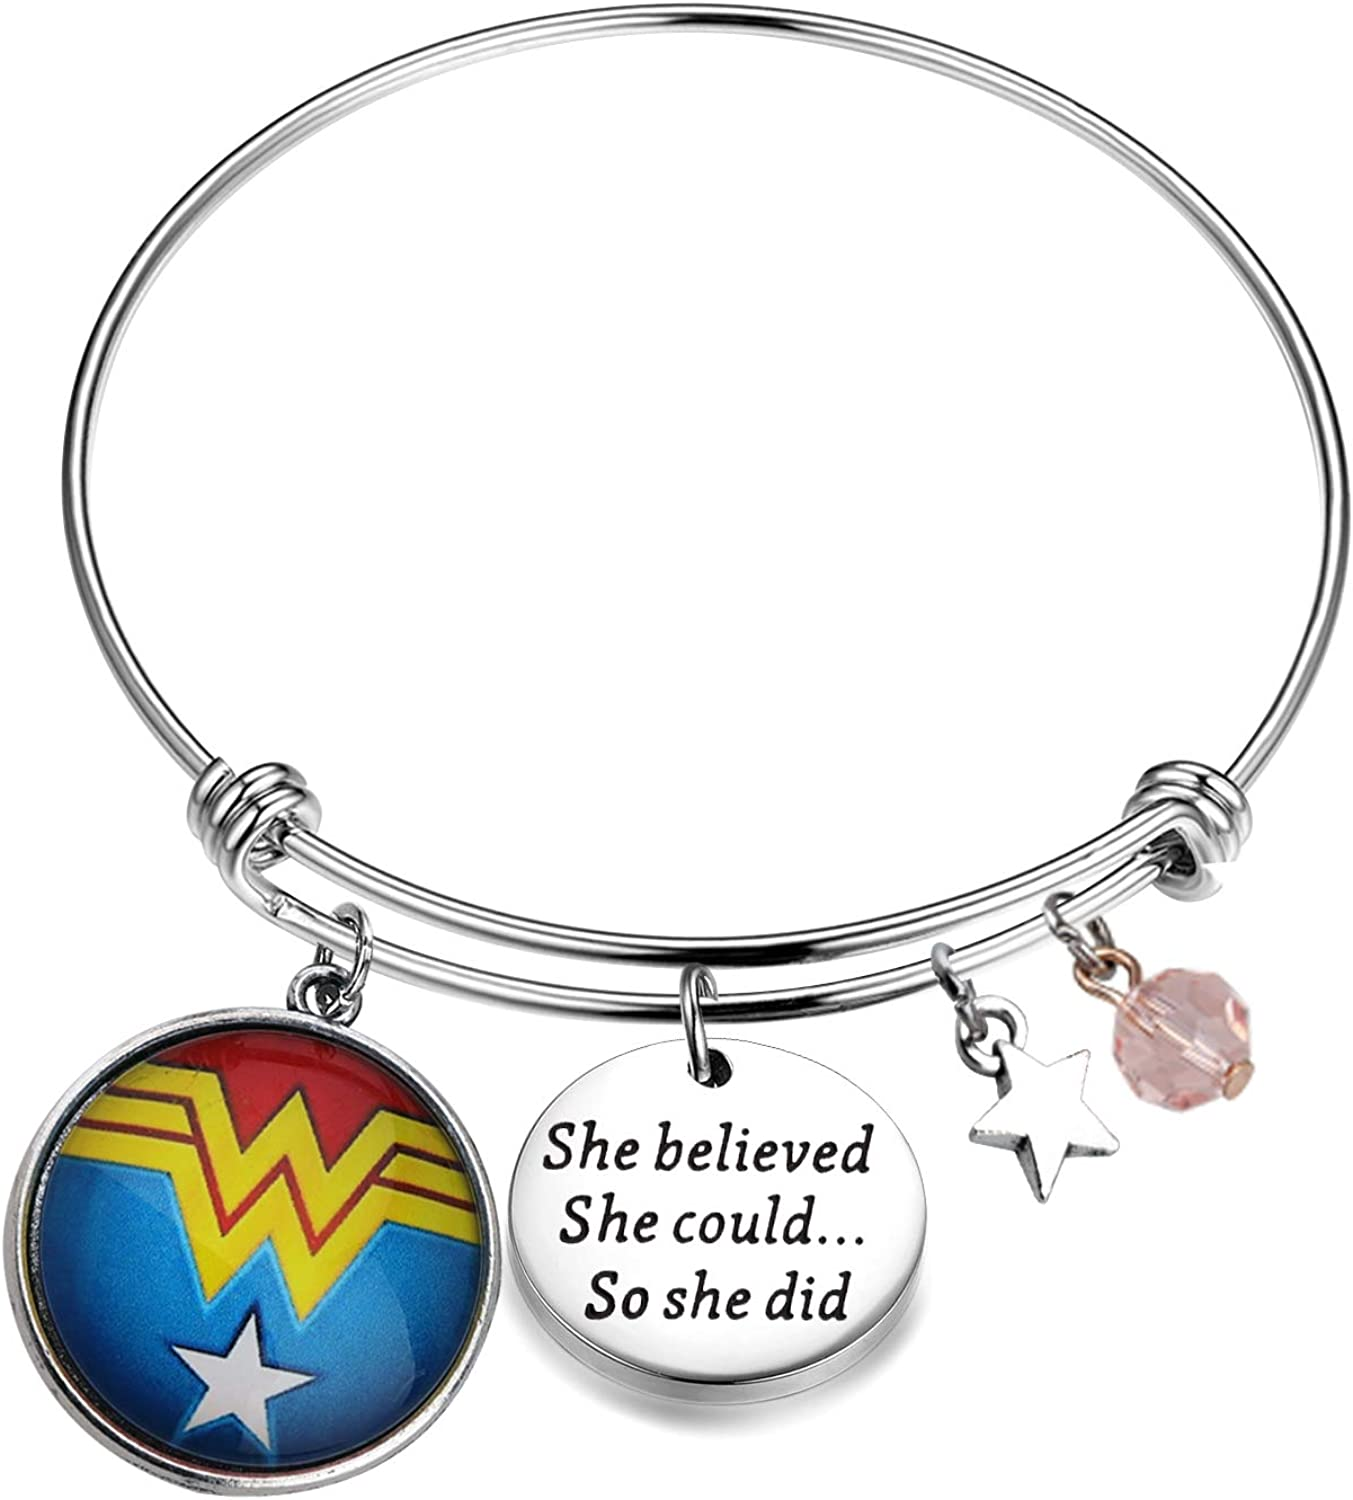 Lywjyb Birdgot Wonder Woman Inspired Bracelet She Believed She Could So She Did Wonder Woman Charms Jewelry Gift for Her